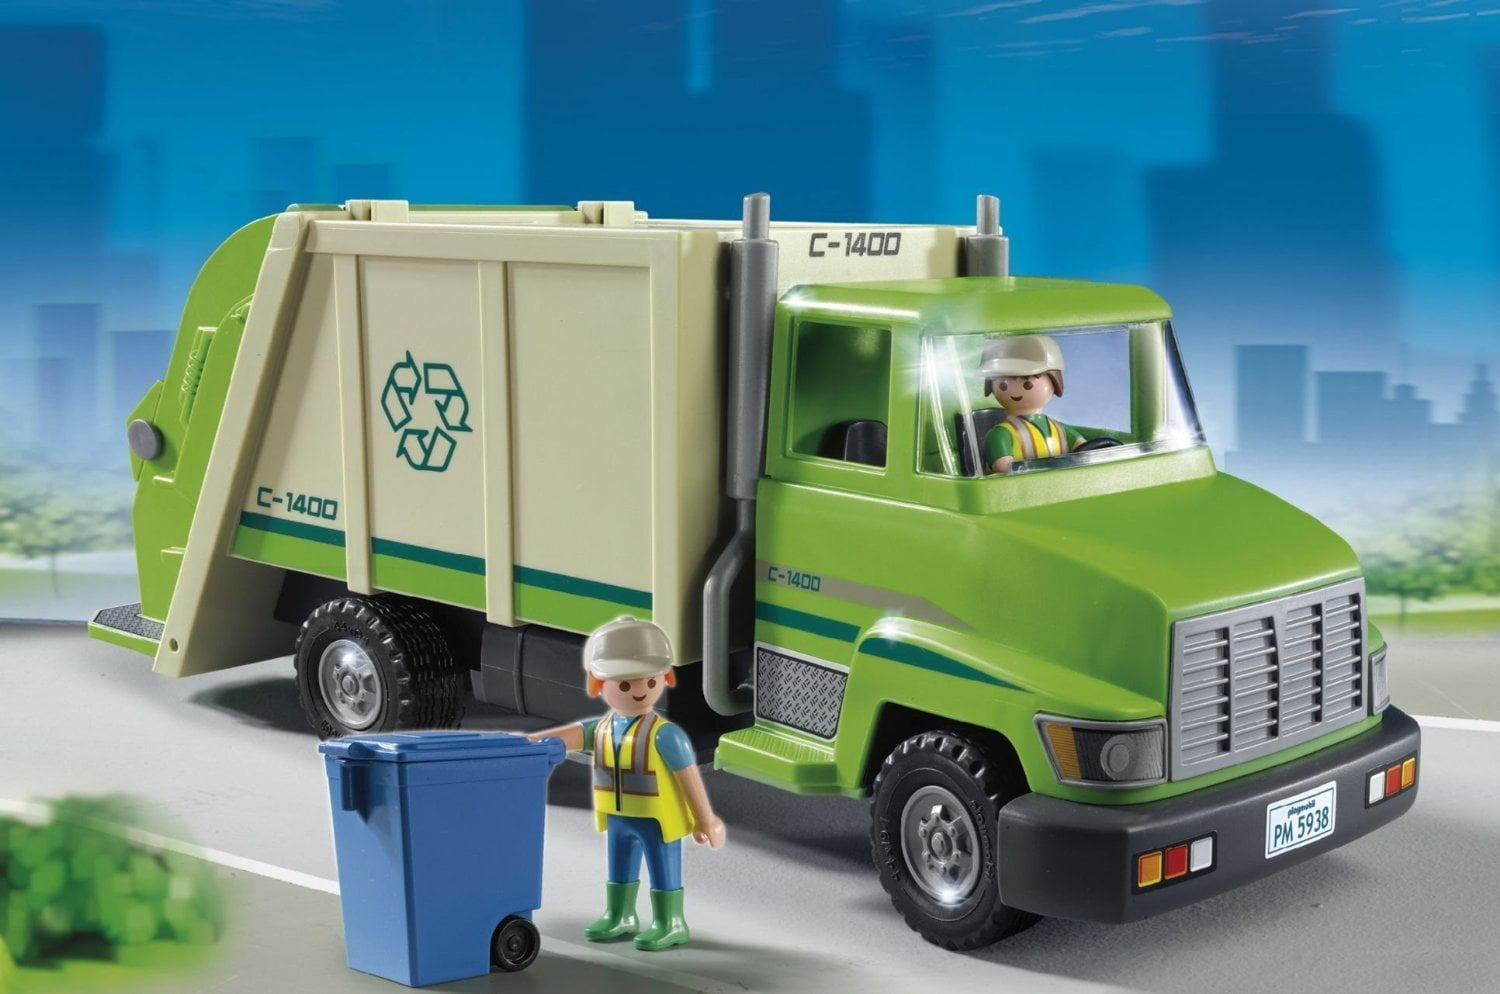 Get ready garbage truck coloring book - This Isn T Technically A Toy Garbage Truck But Kids Love This Toy Recycling Truck Just As Much As Garbage Trucks So We Have Included It On Our List